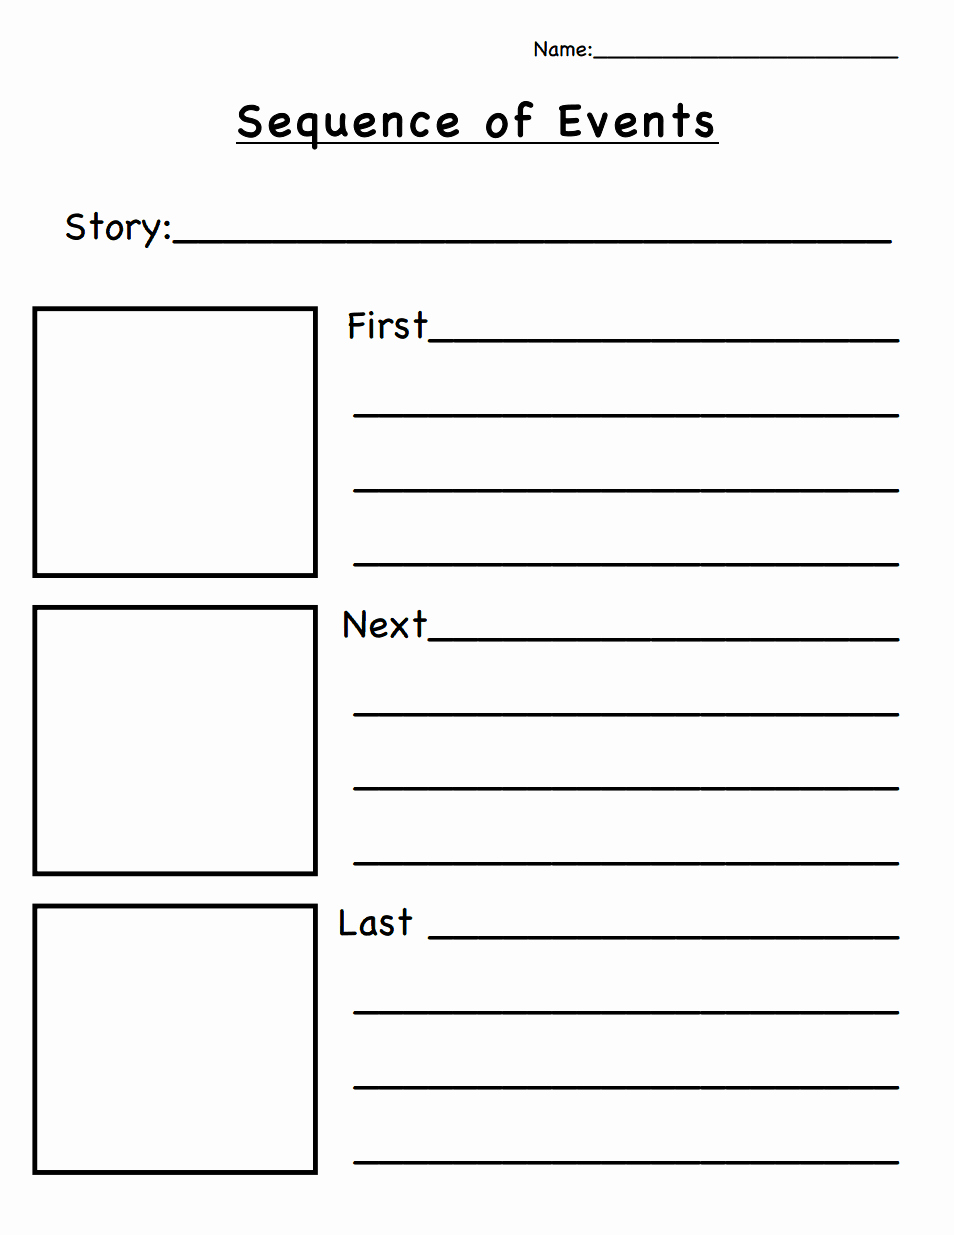 Graphic sources Worksheets Best Of Sequencing Timeline Template ordering Biographical events